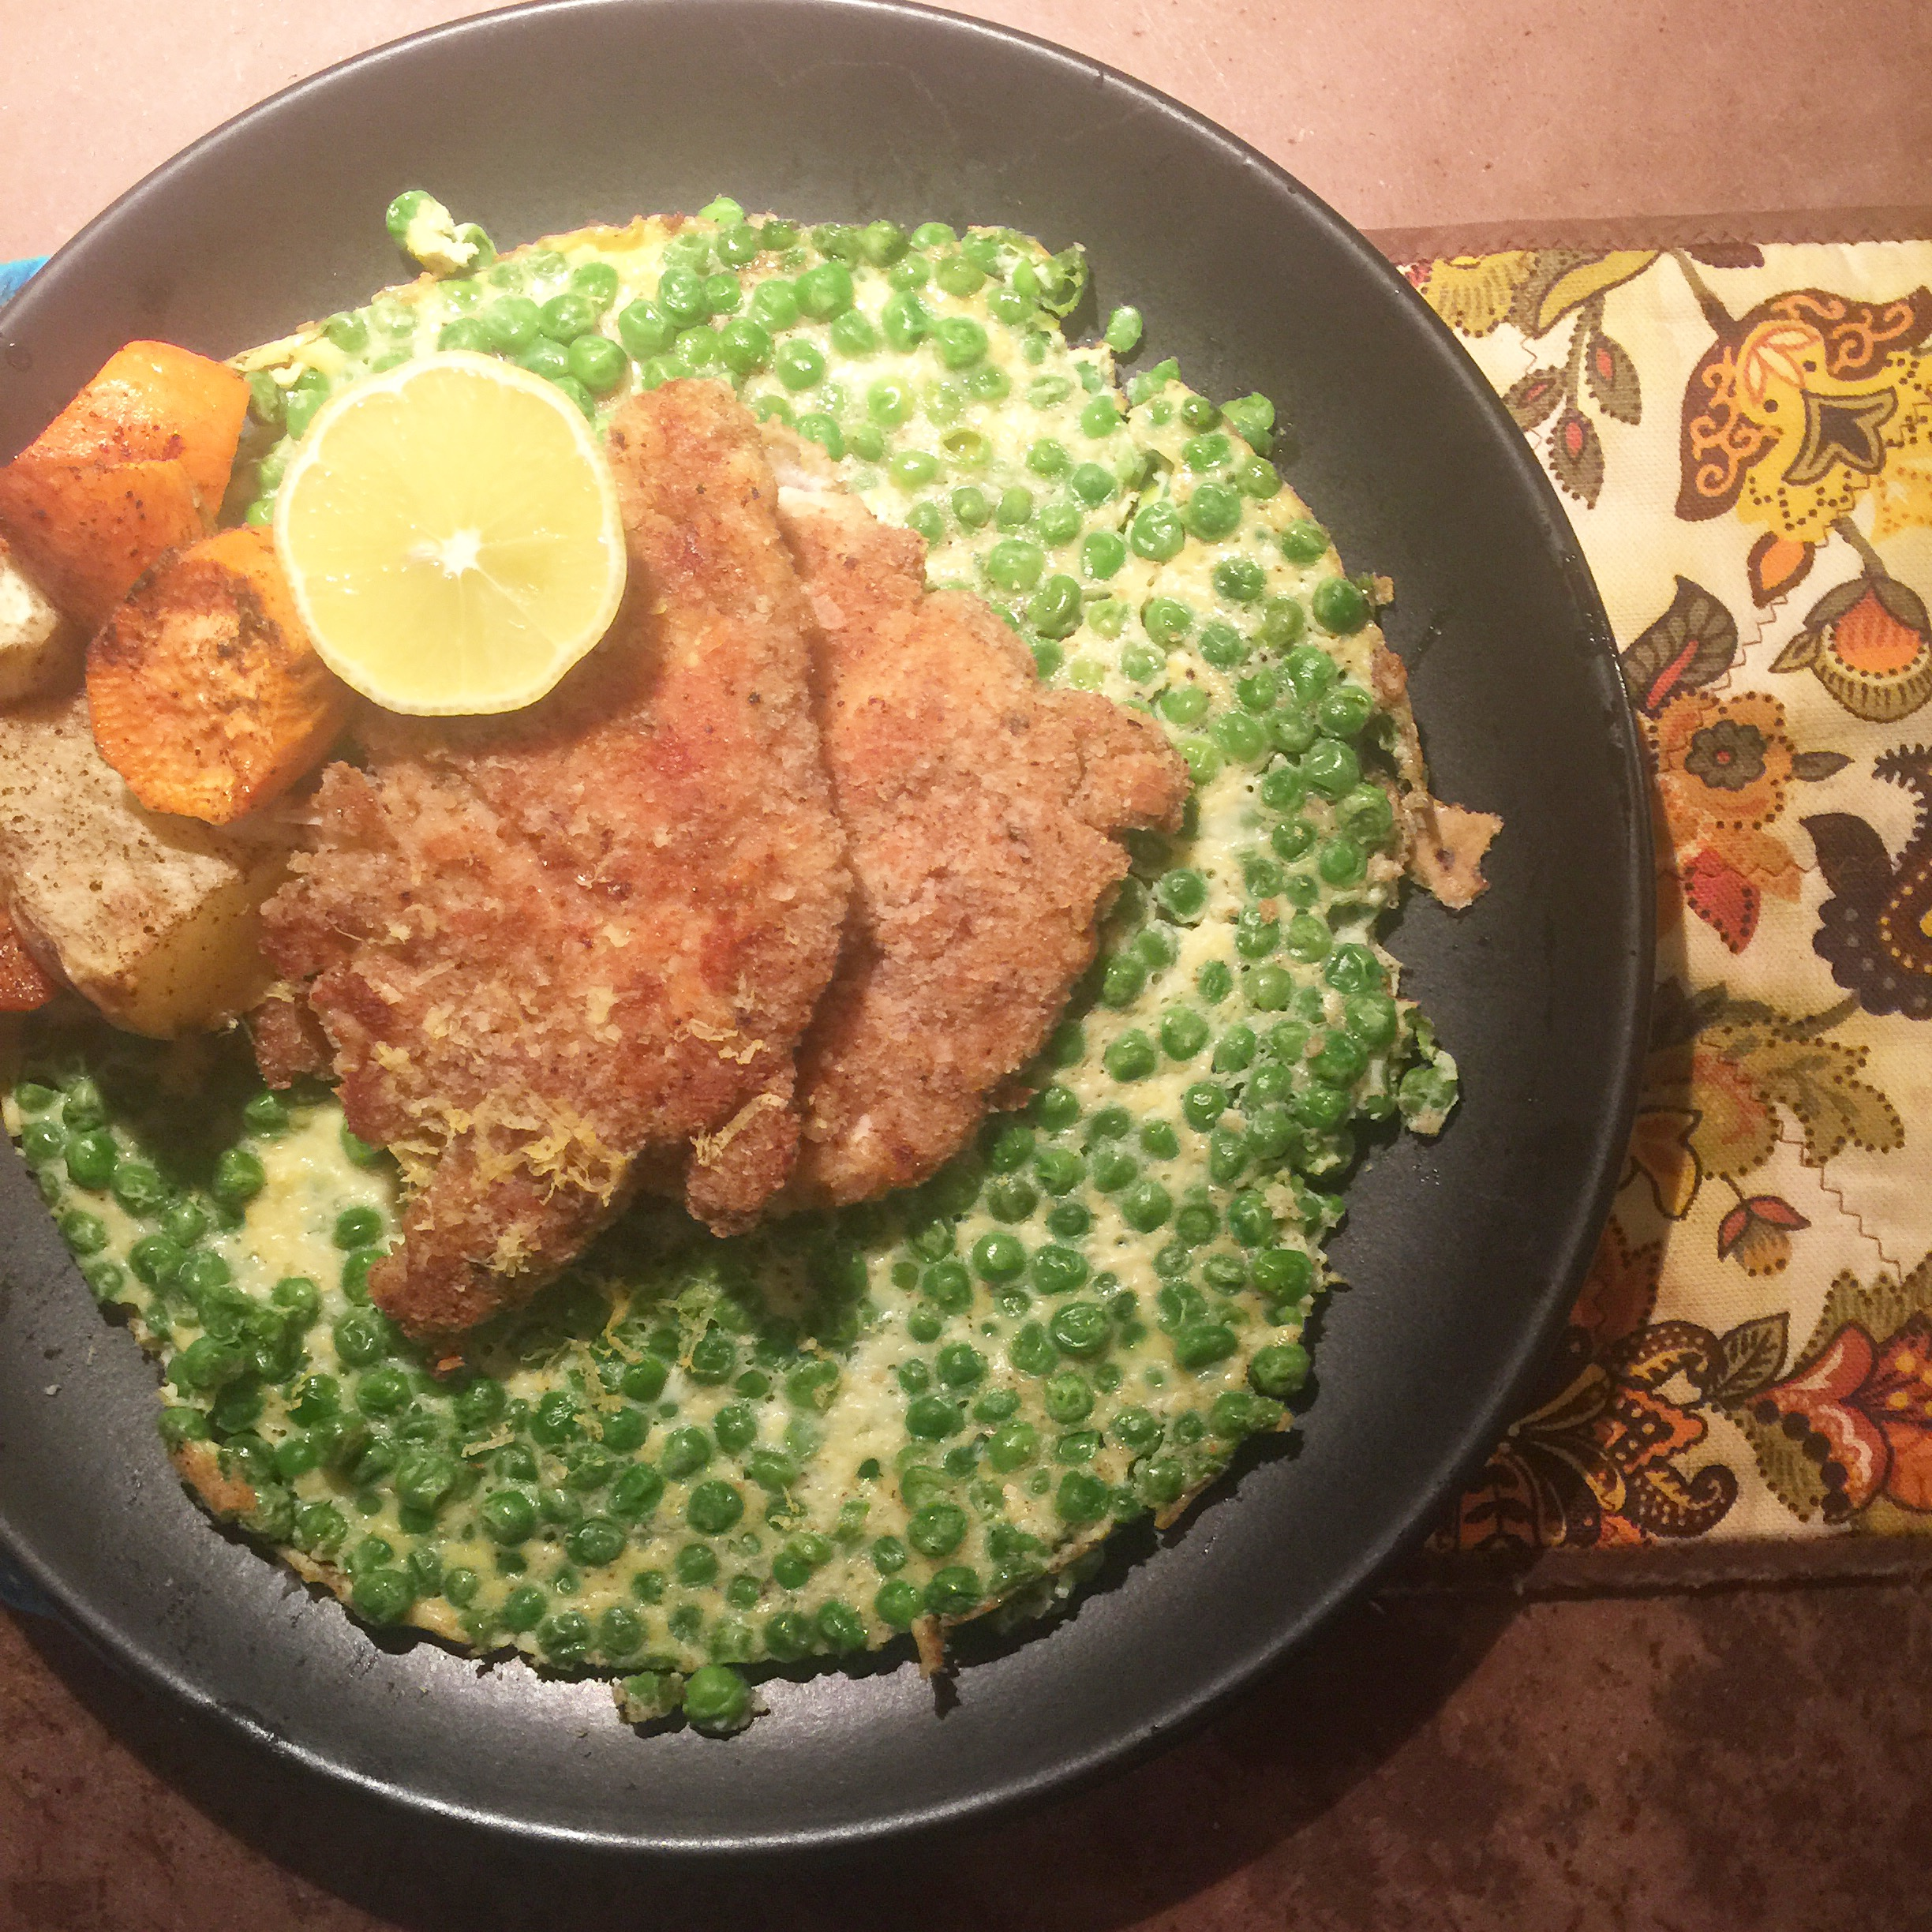 Crispy Chicken with roasted sweet potato yam / frittata with peas and garlic with fresh squeezed lemon juice